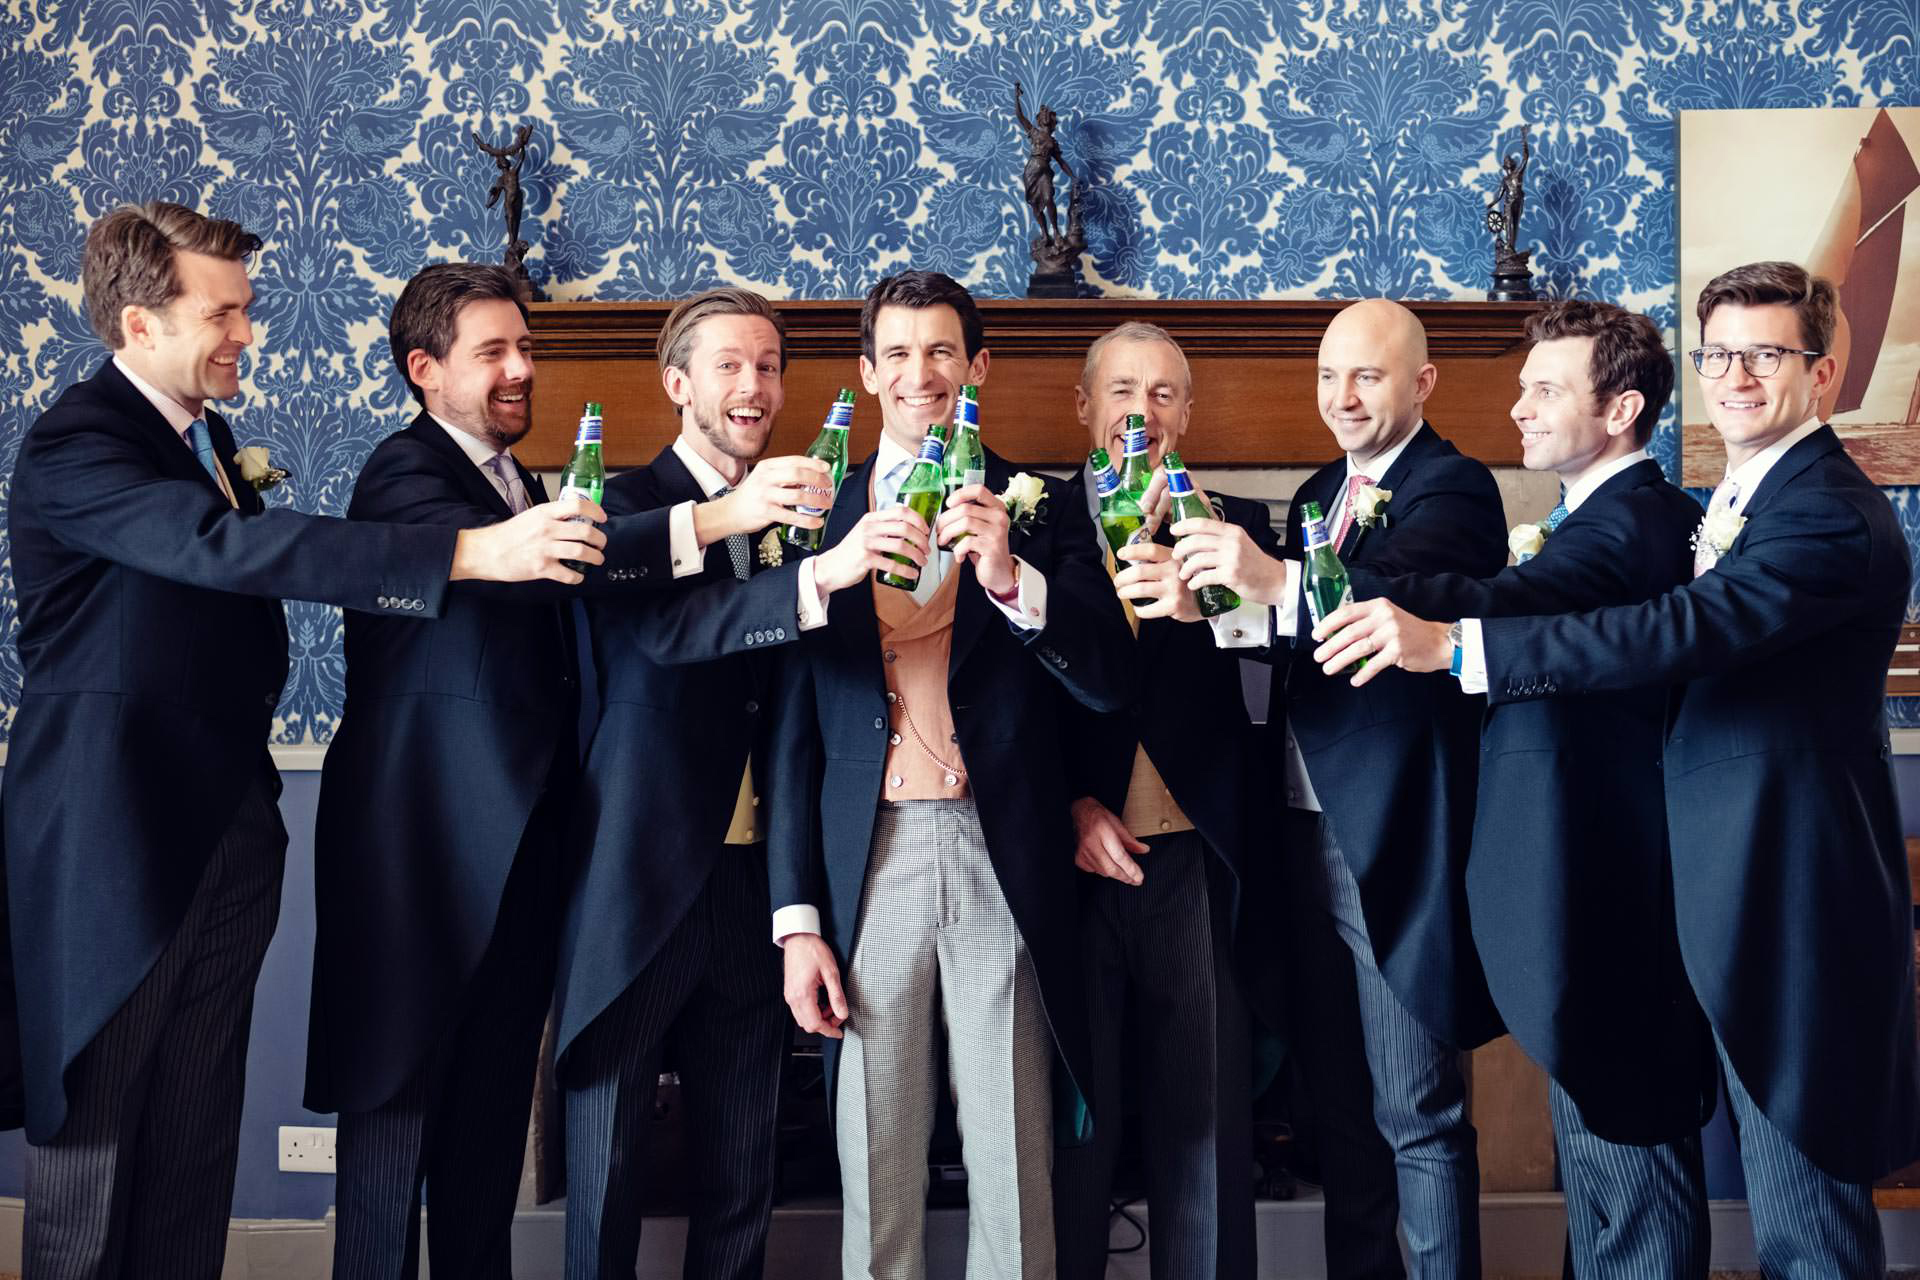 The groom, best man and ushers celebrating with beers before the wedding at Hengrave Hall